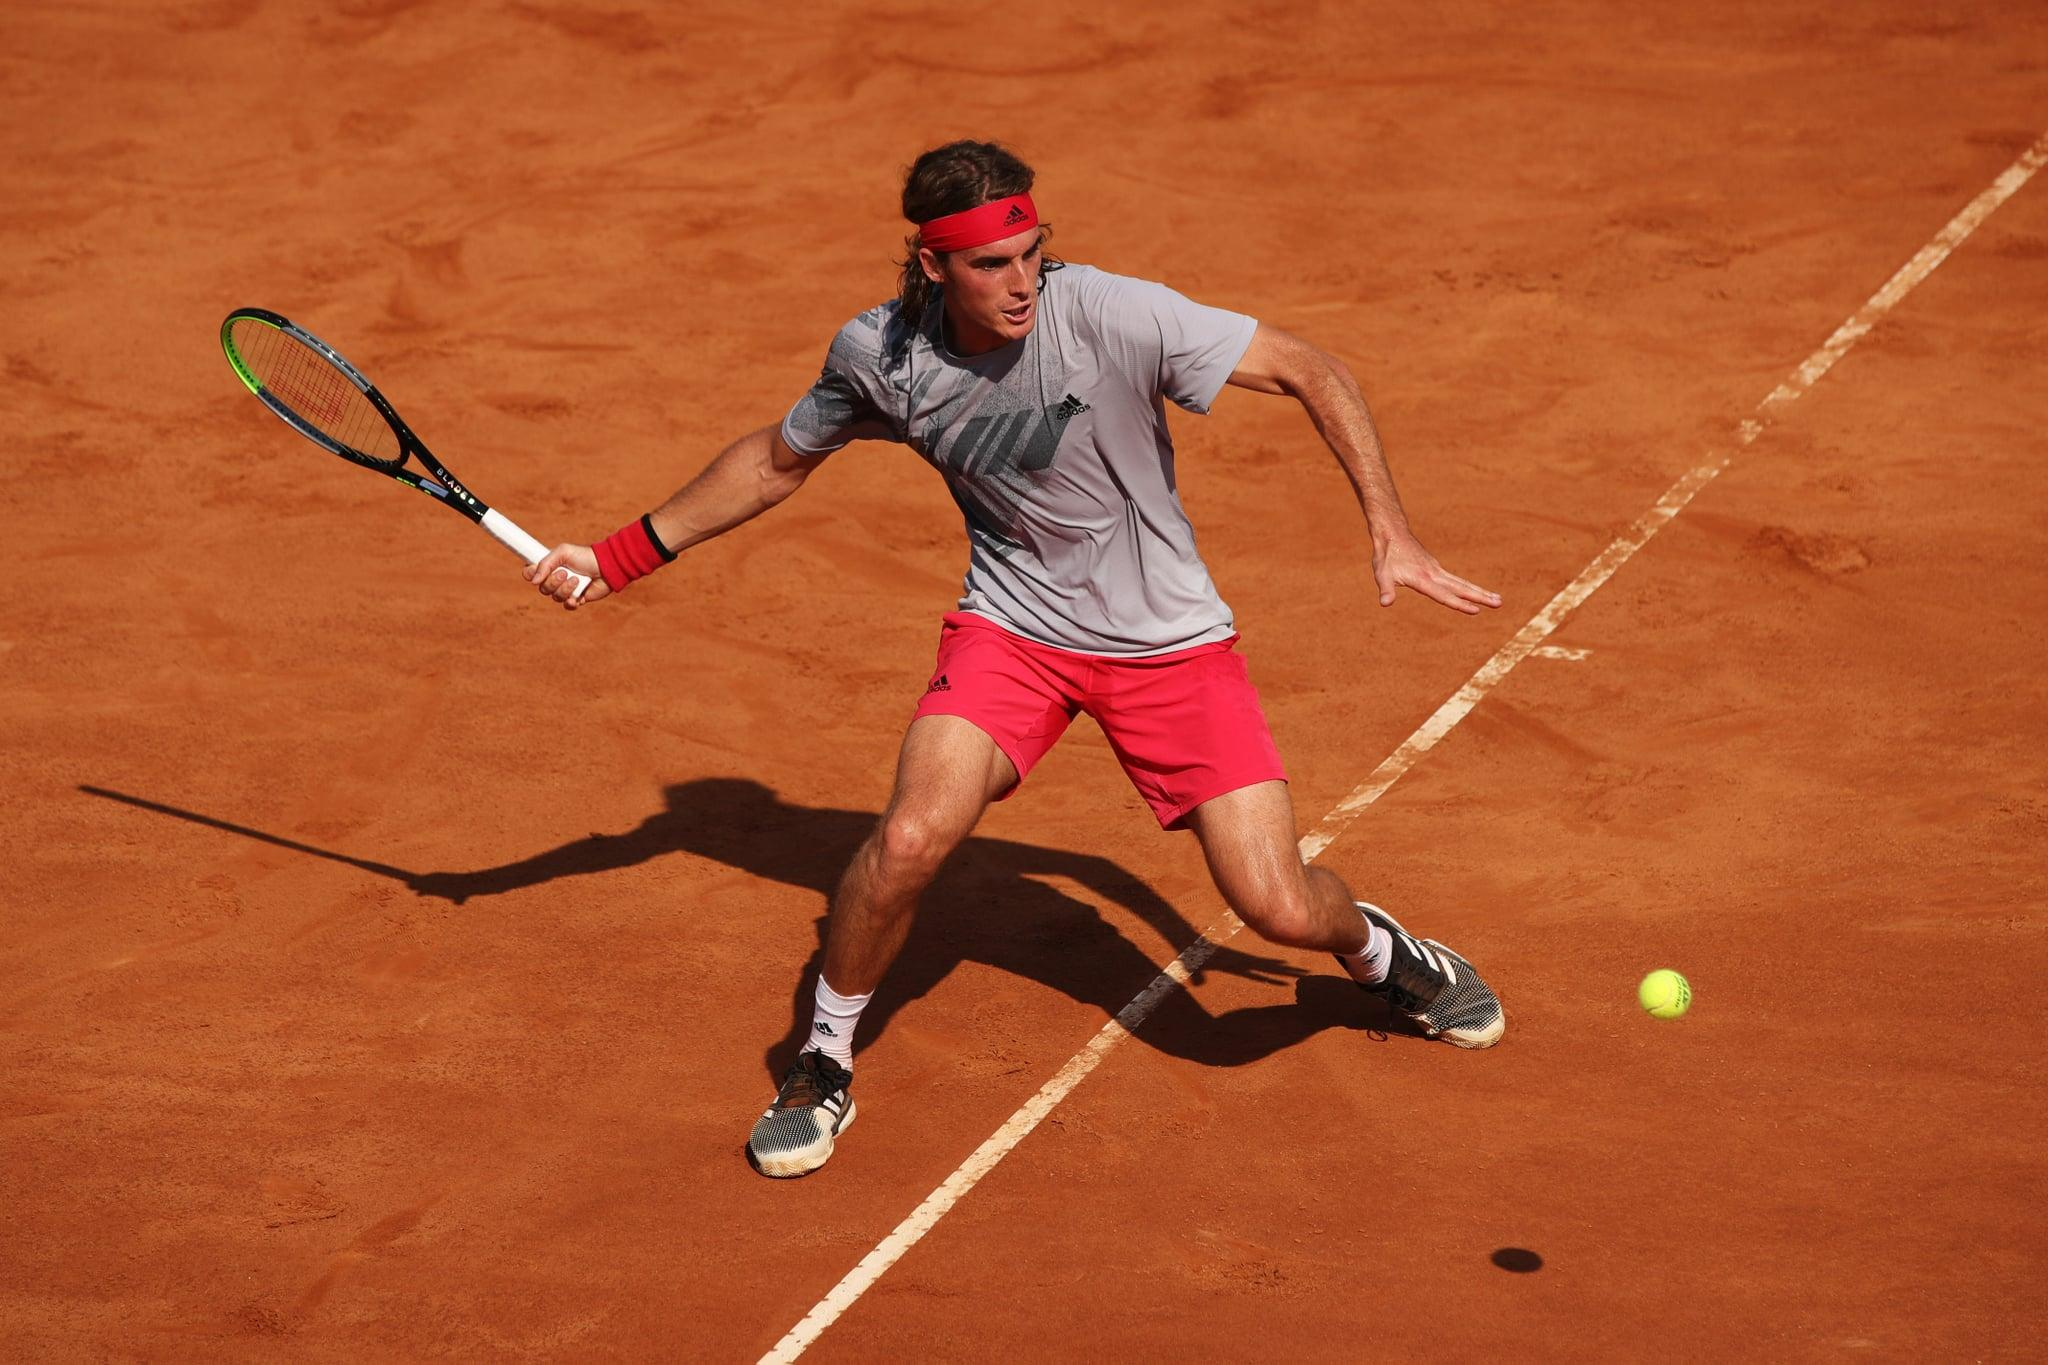 <p>Mouratoglou came across a video of Stefanos Tsitsipas on YouTube and immediately reached out to him, inviting him to train at his academy. Mouratoglou is not Stefanos head coach but oversees his development.</p>